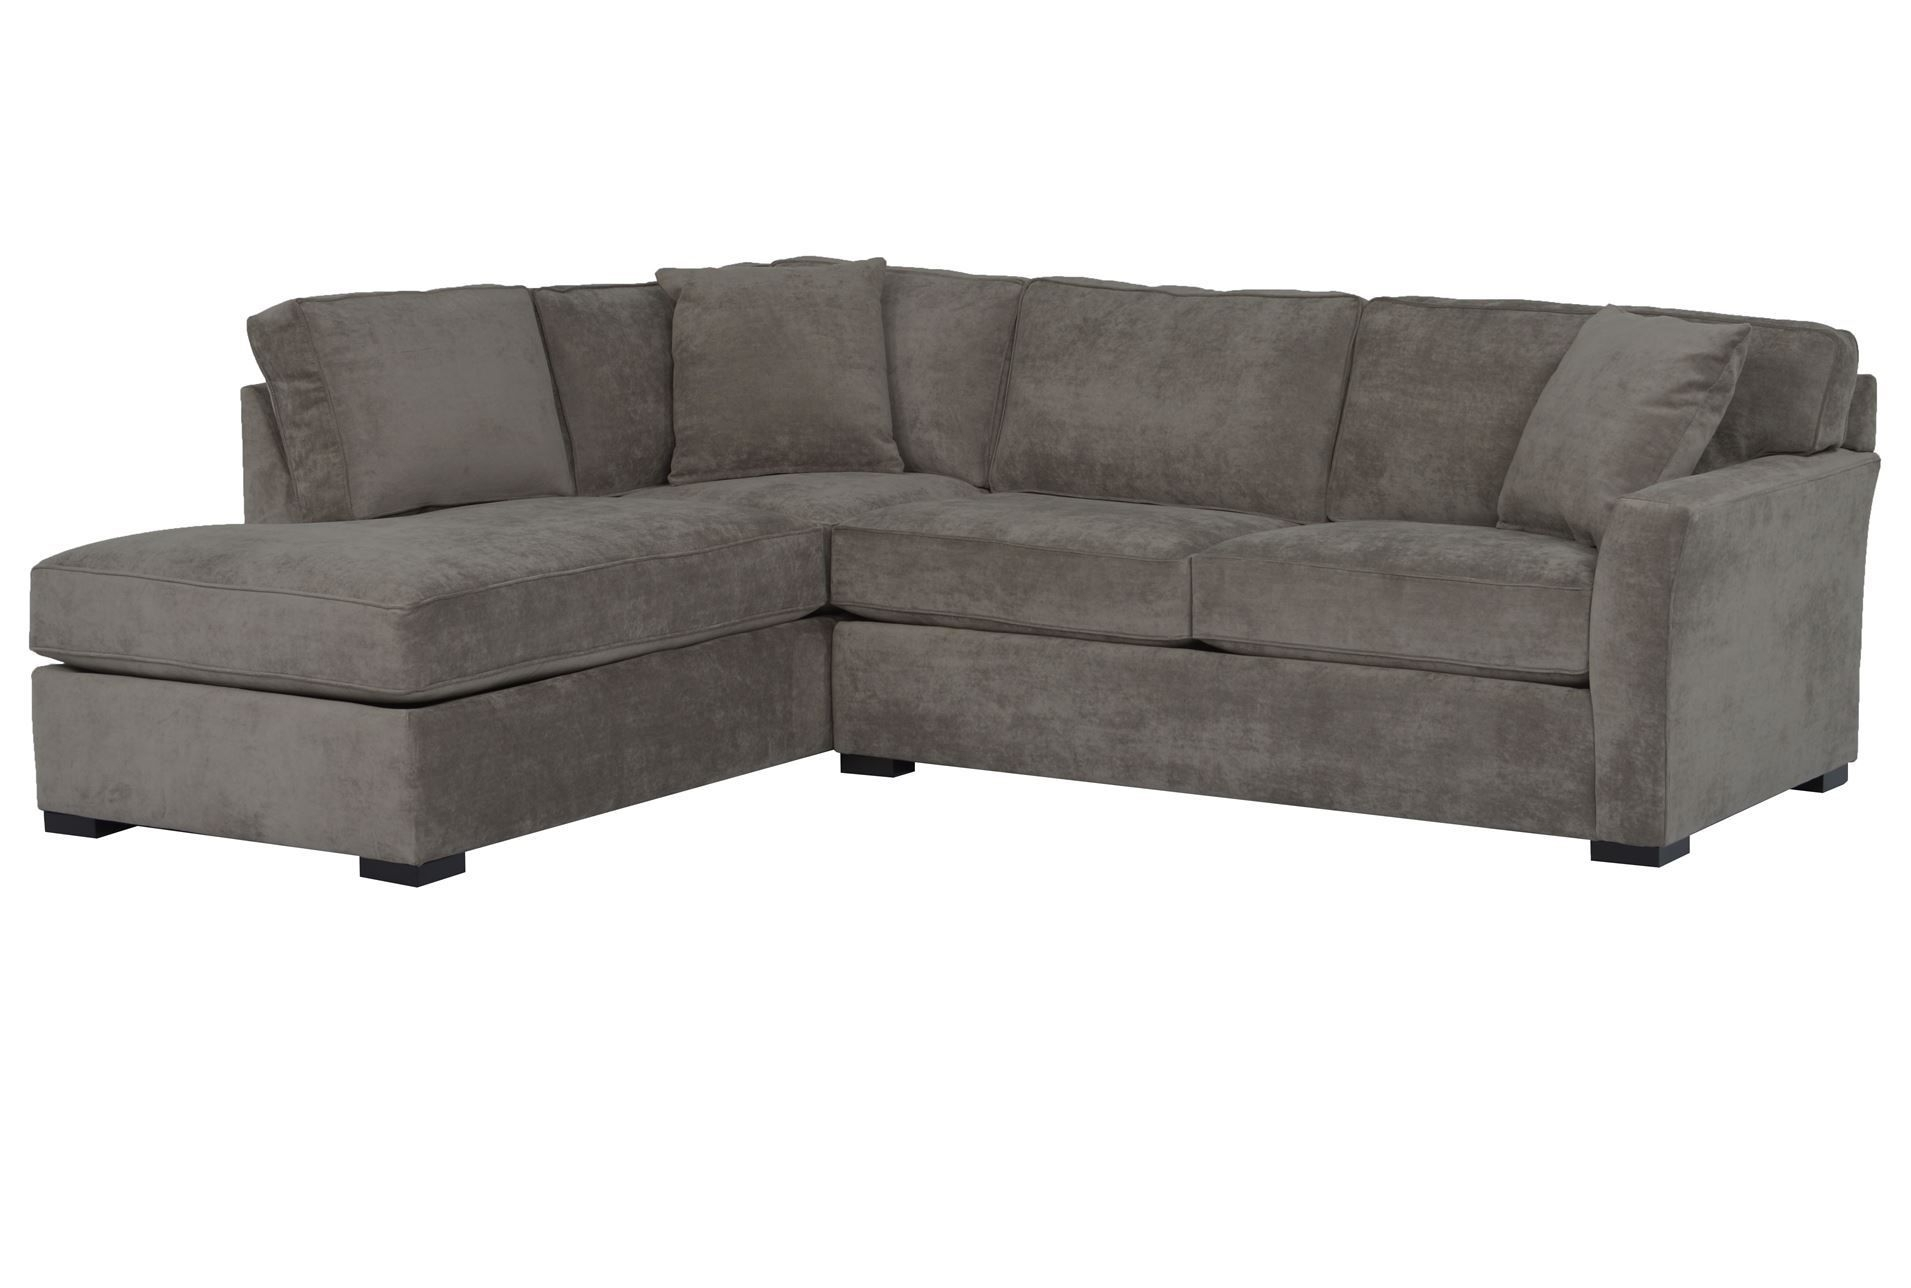 Aspen 2 Piece Sleeper Sectional W/laf Chaise | Living Room Throughout Aspen 2 Piece Sectionals With Raf Chaise (View 18 of 25)